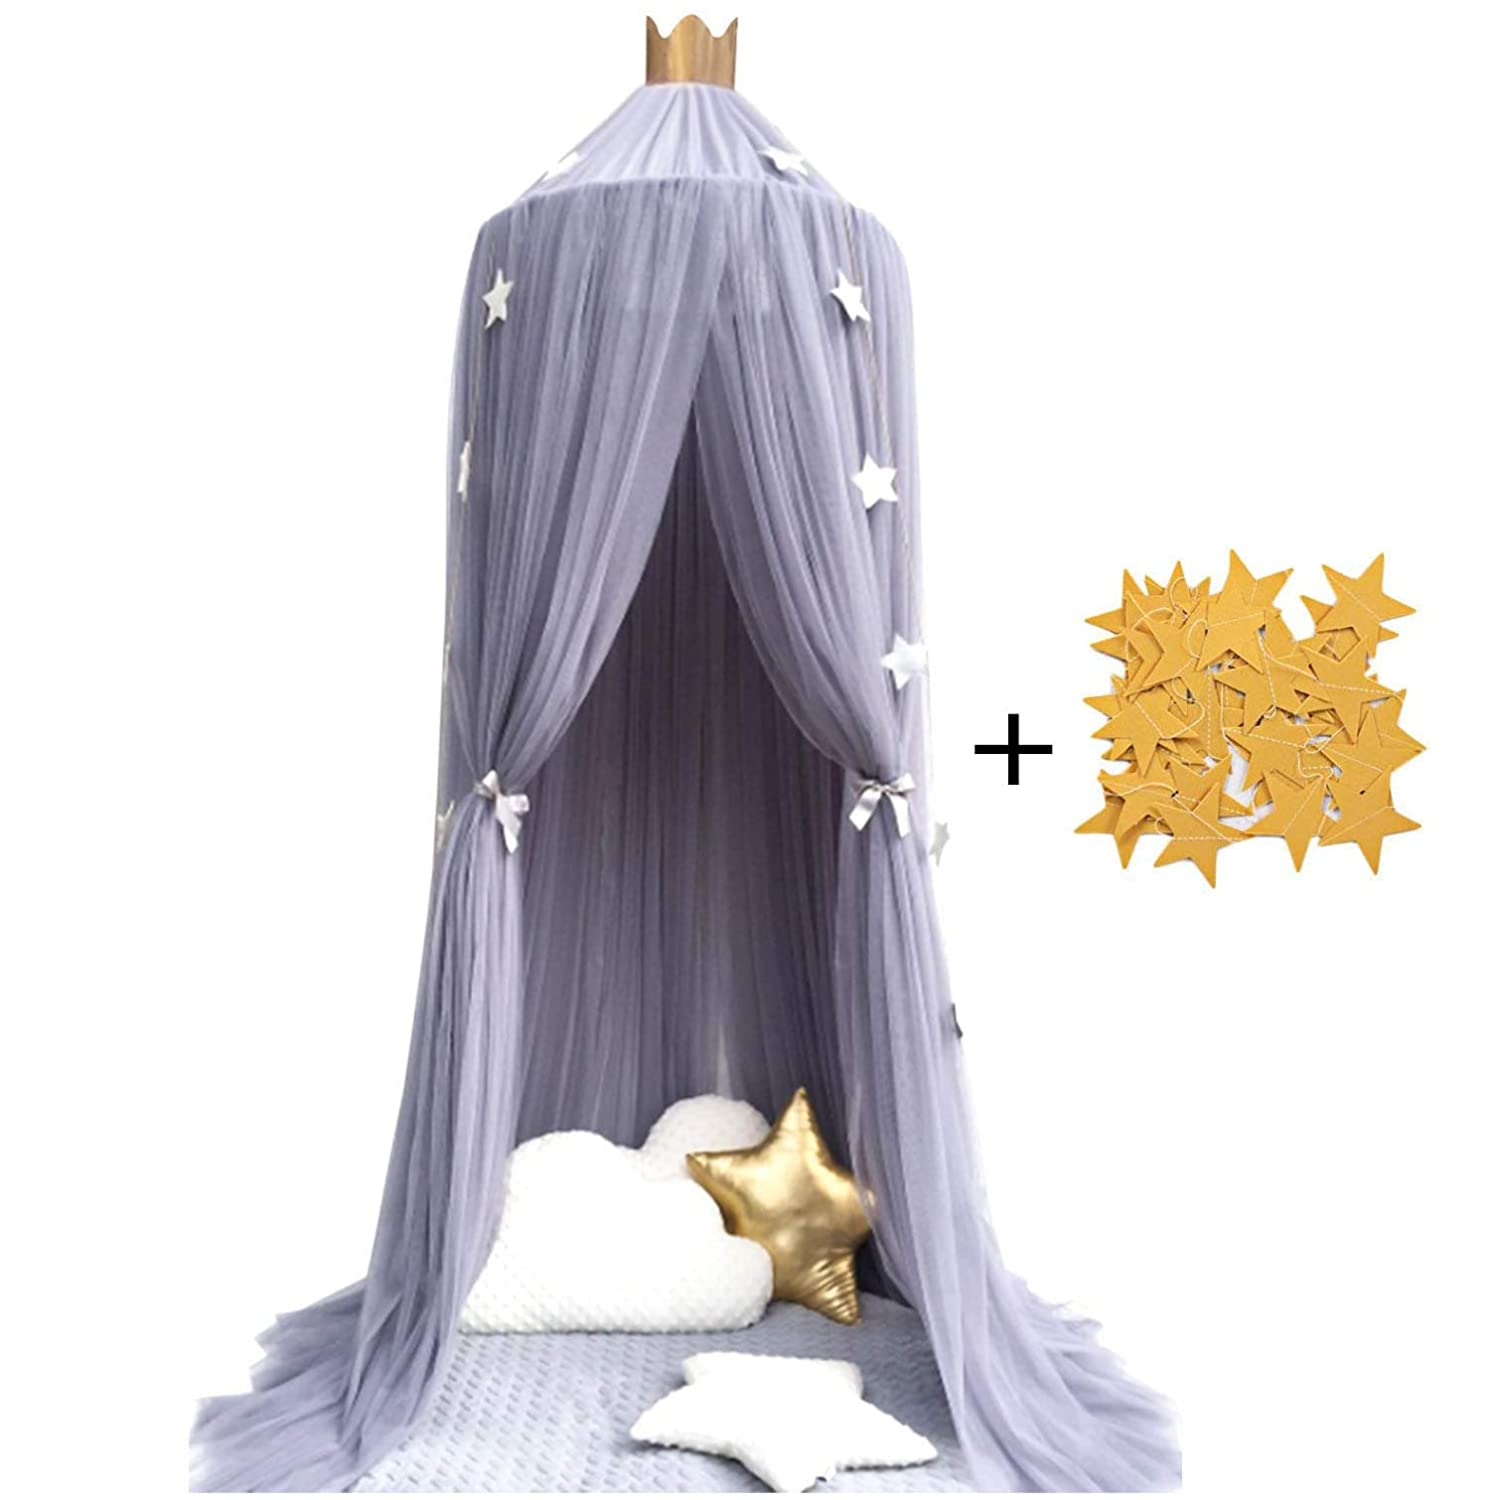 Trcoveric Princess Bed Canopies Premium Yarn Mosquito Net for Kids Baby Crib,Play Tent Bedding House Decor Reading Corner White